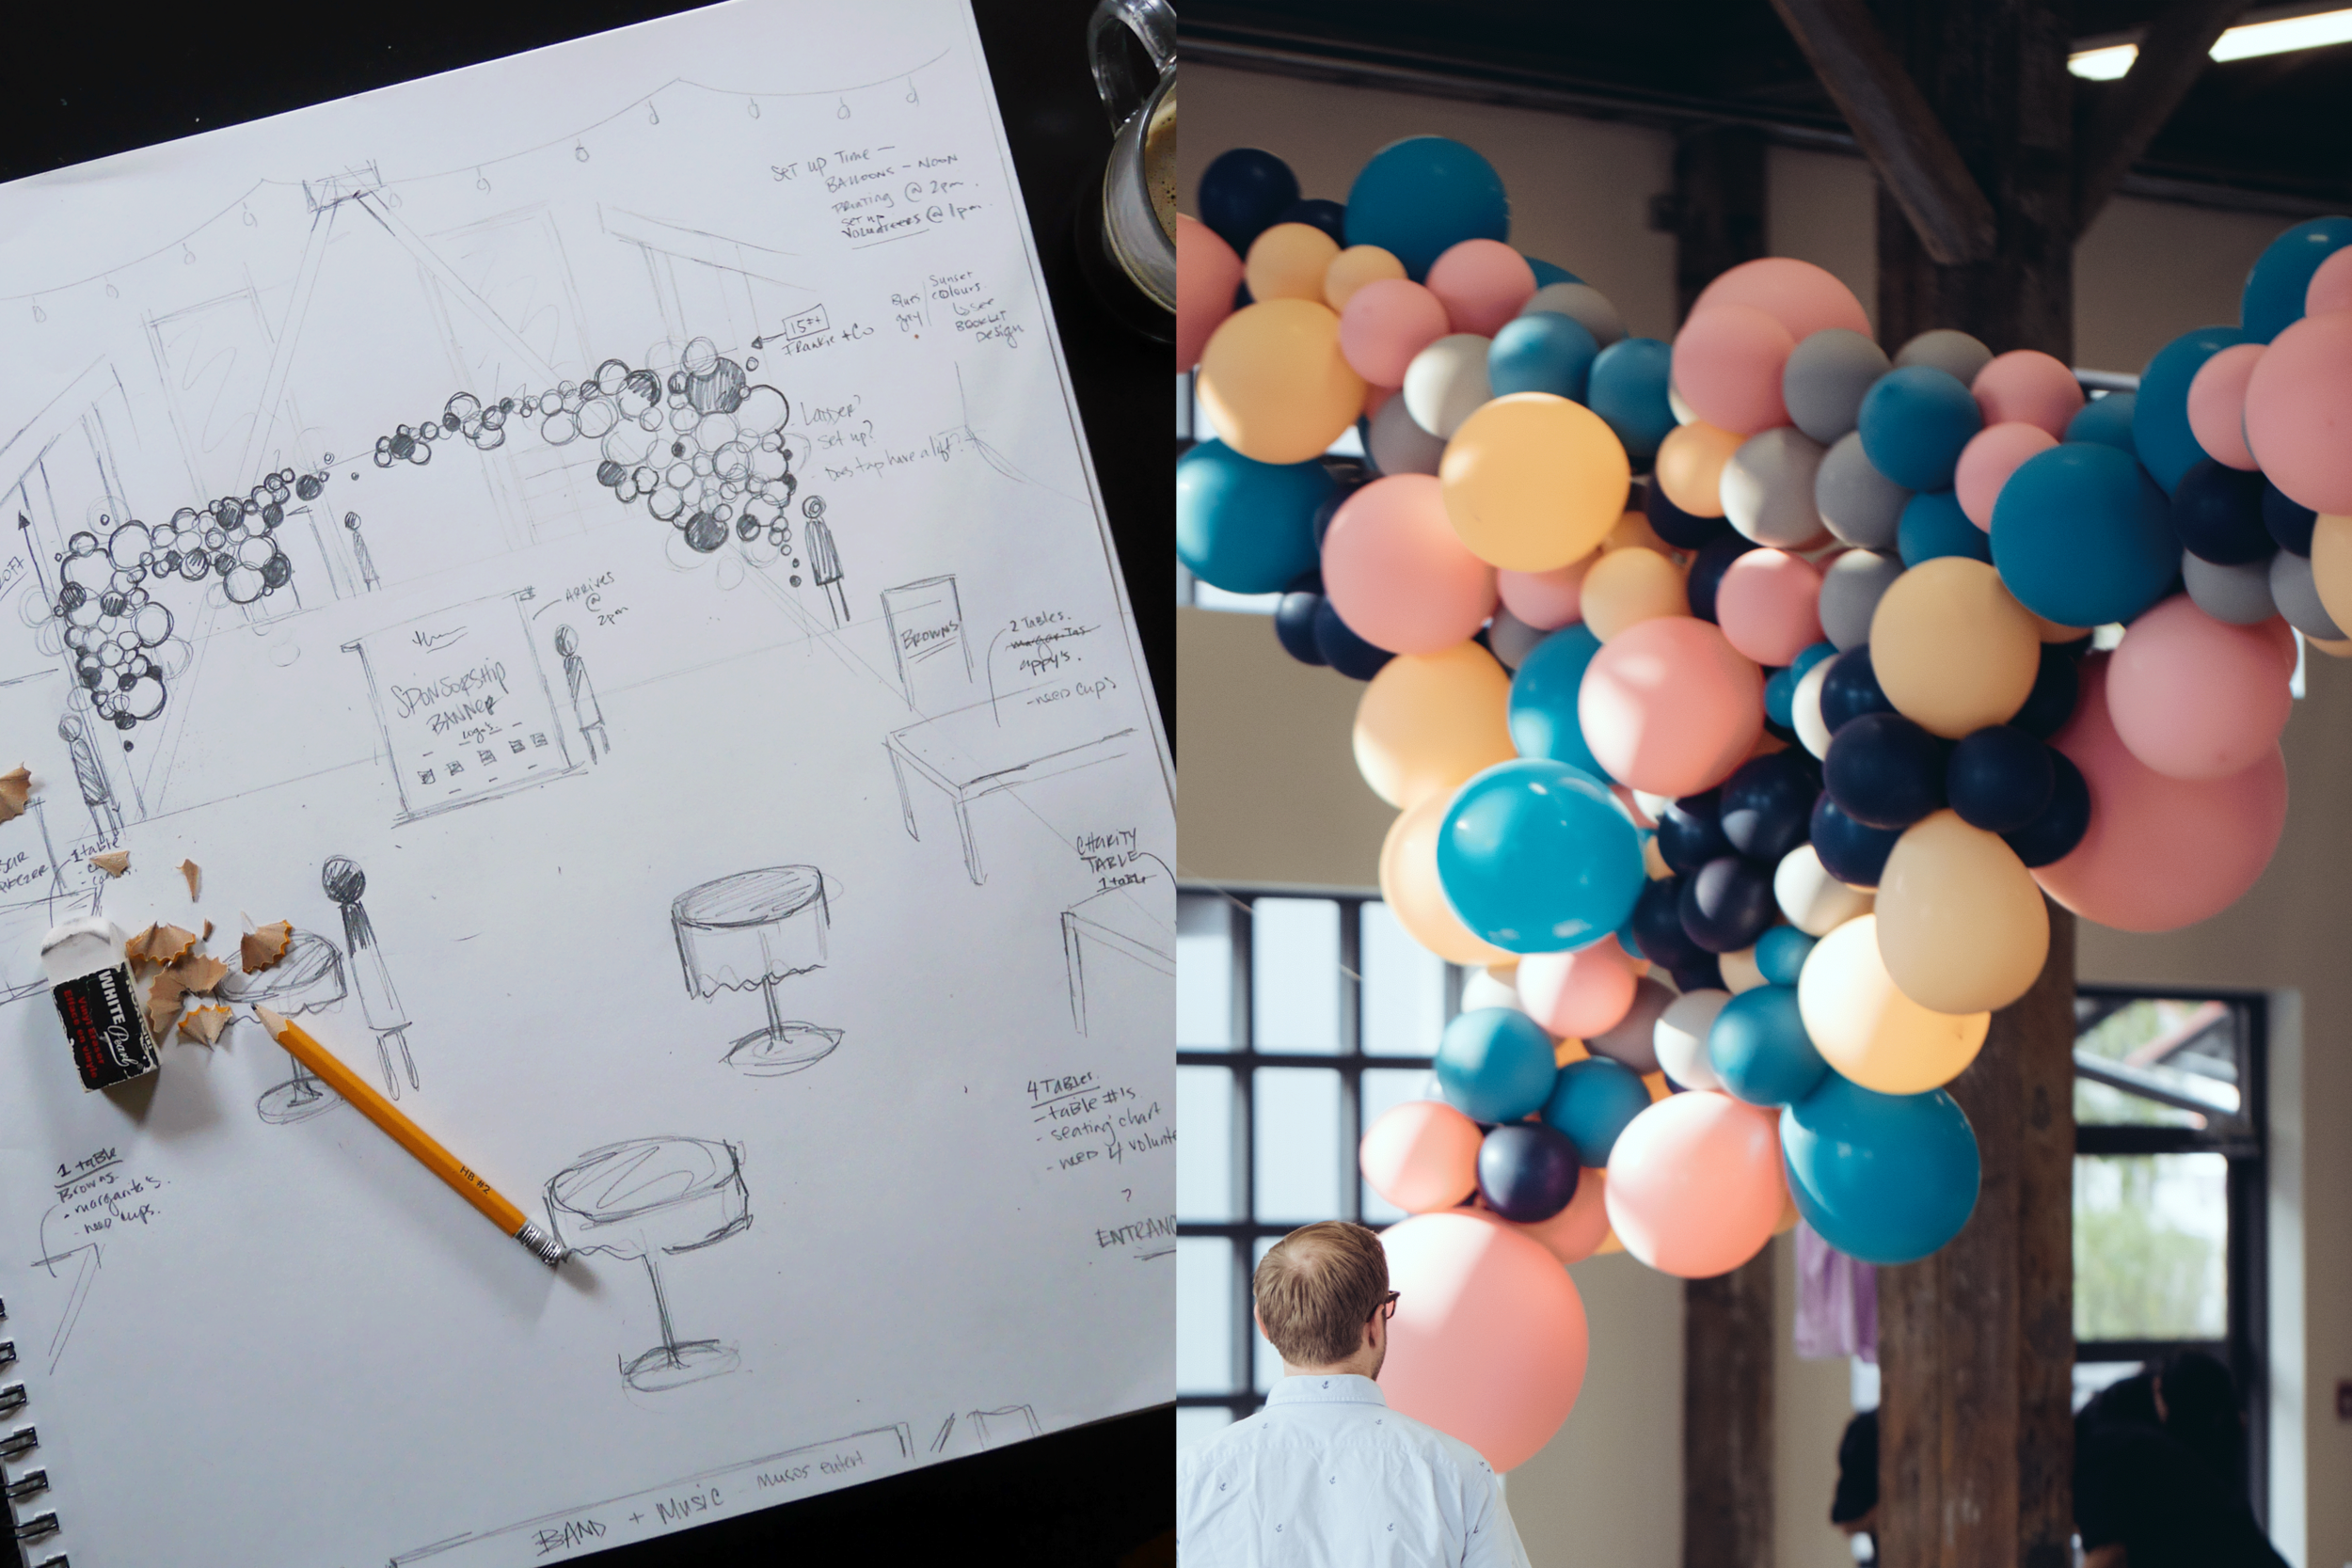 The event begins with a cocktail hour in the Pipe Shop Venue. Shown above is a concept design and layout of the room. Balloon design was executed by Frankie and Co.